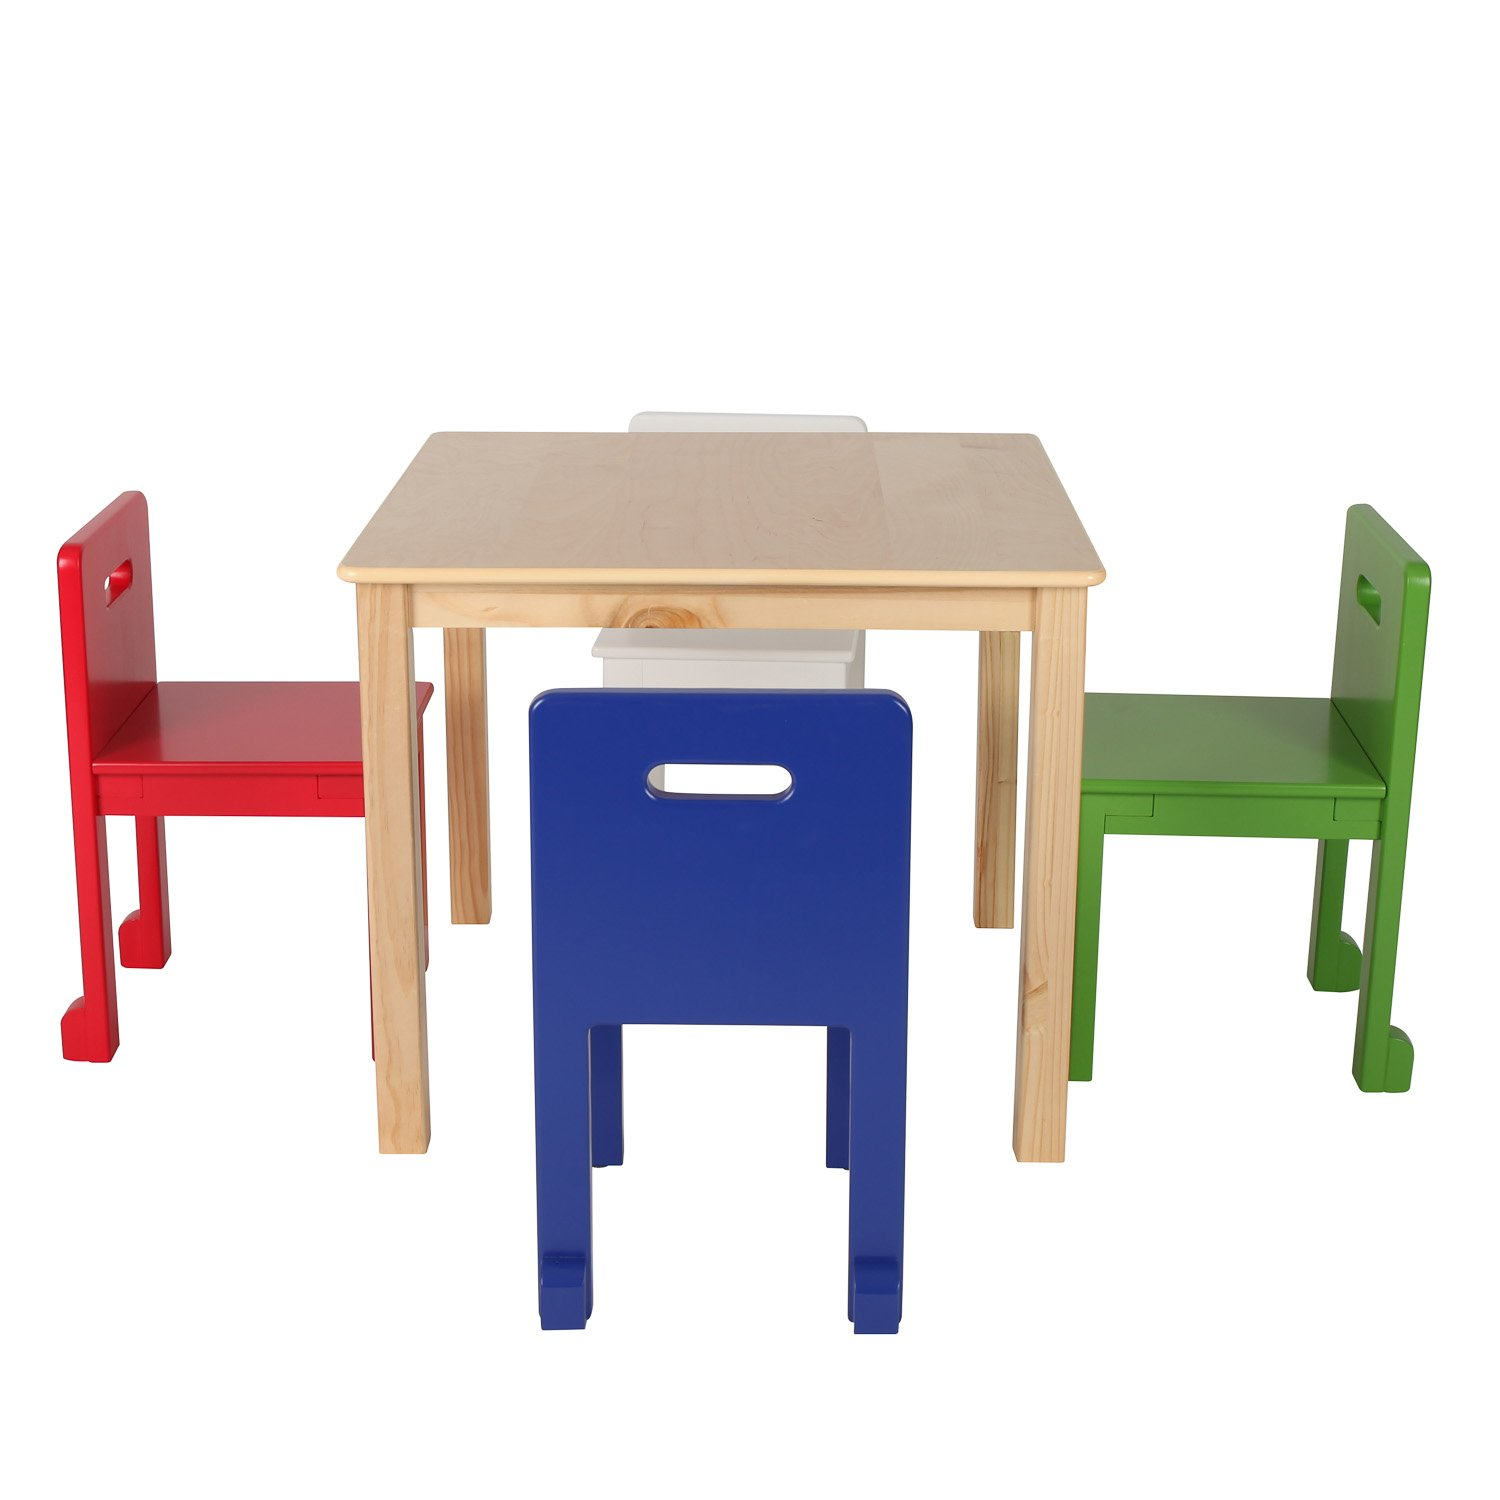 Max & Lily Natural Wood Kid and Toddler Square Table Set with 4 Colored Chairs